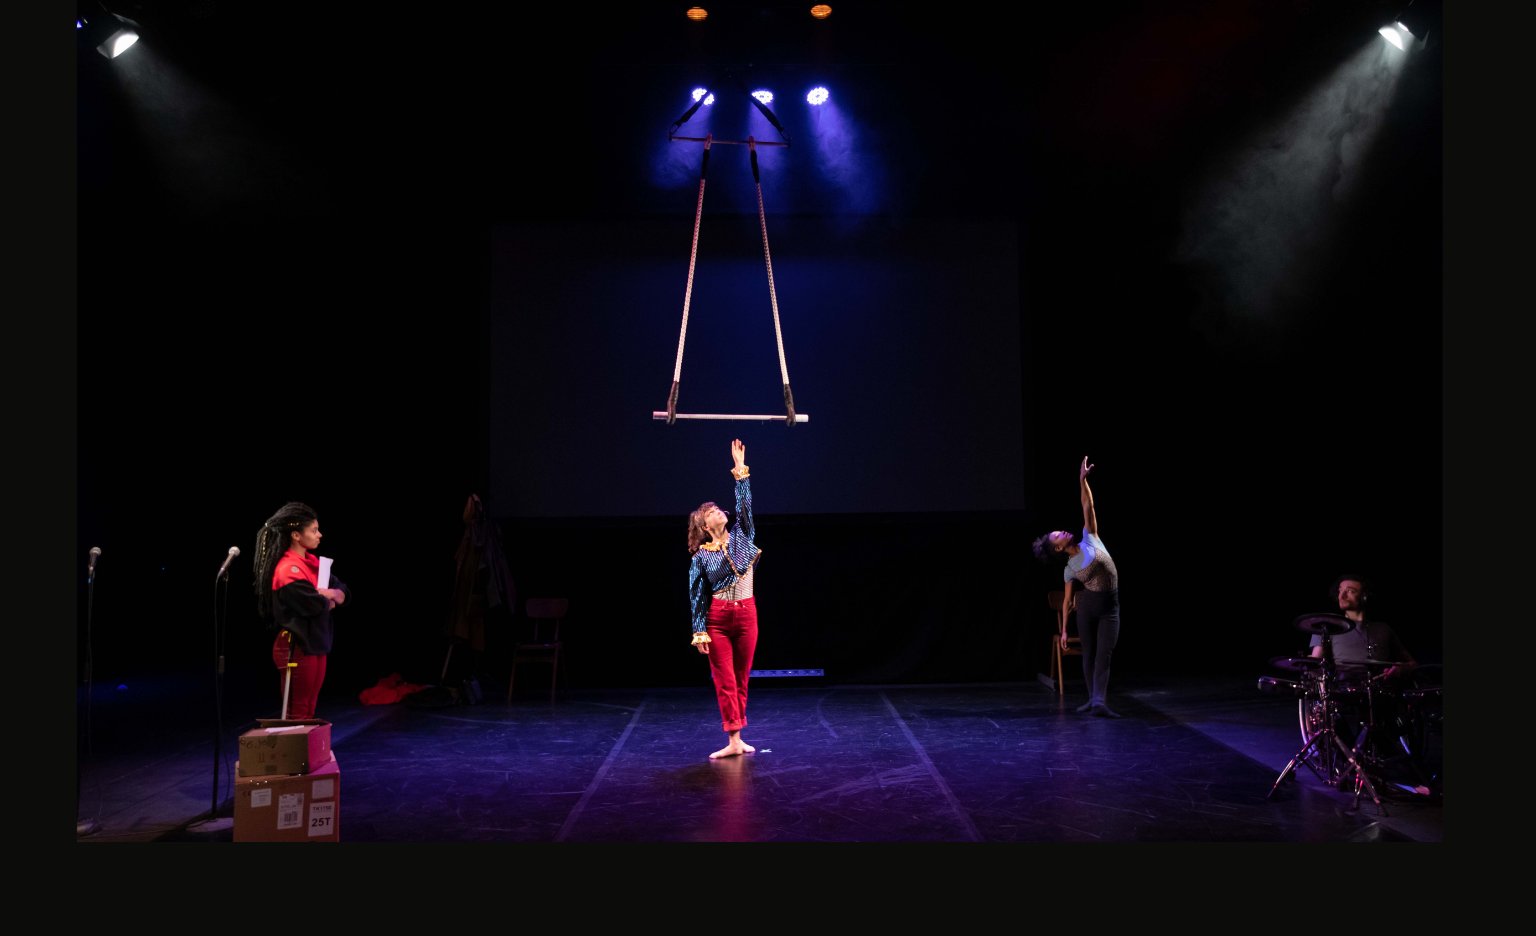 Three performers on a dimly lit bare stage, purple spotlights above them. In the centre, a white woman in her twenties stands with one arm raised up to a trapeze that hangs from above. She wears a blue and gold sparkly top and red trousers. On the left, a mixed-race woman in her twenties wears a DPD delivery outfit - black and red fleece top and red trousers. She looks at the performer in the centre. On the right, a mixed-race woman stands with one arm raised up, bending backwards gracefully. She wears a leotard and grey leggings.